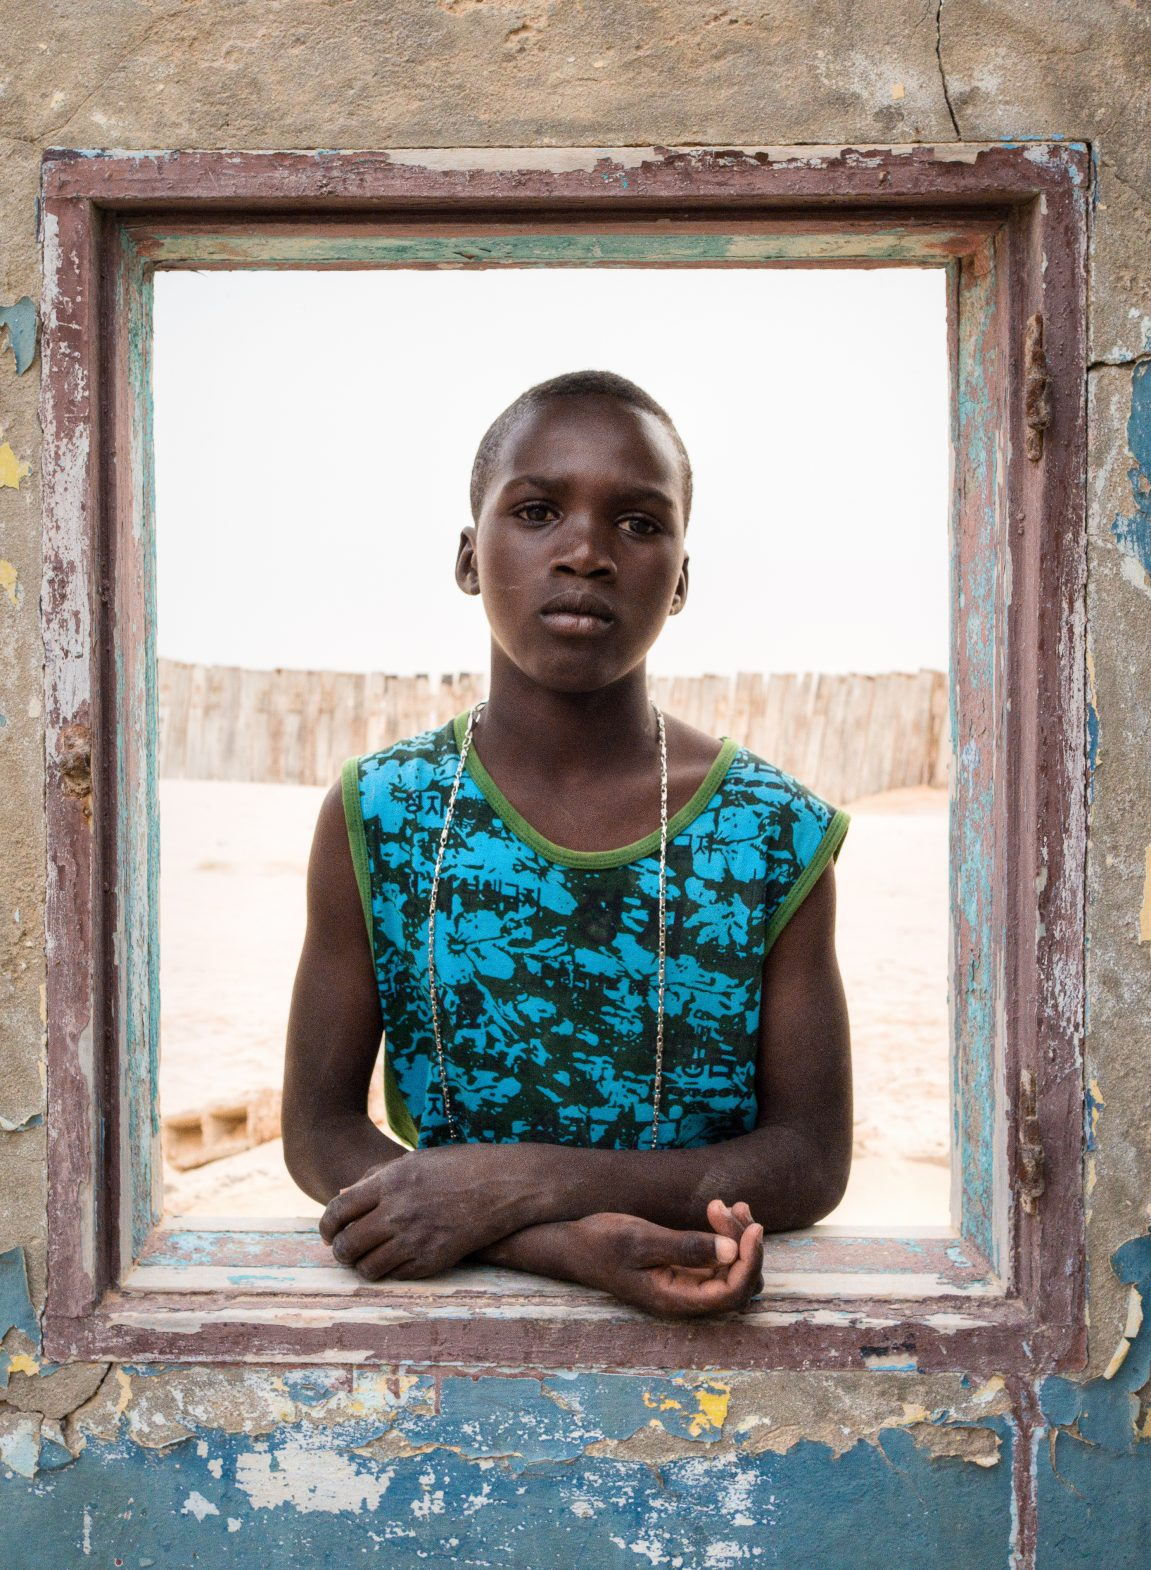 A young Mauritanian girl poses for a photo in the window of the many old buildings in Nouadhibou.